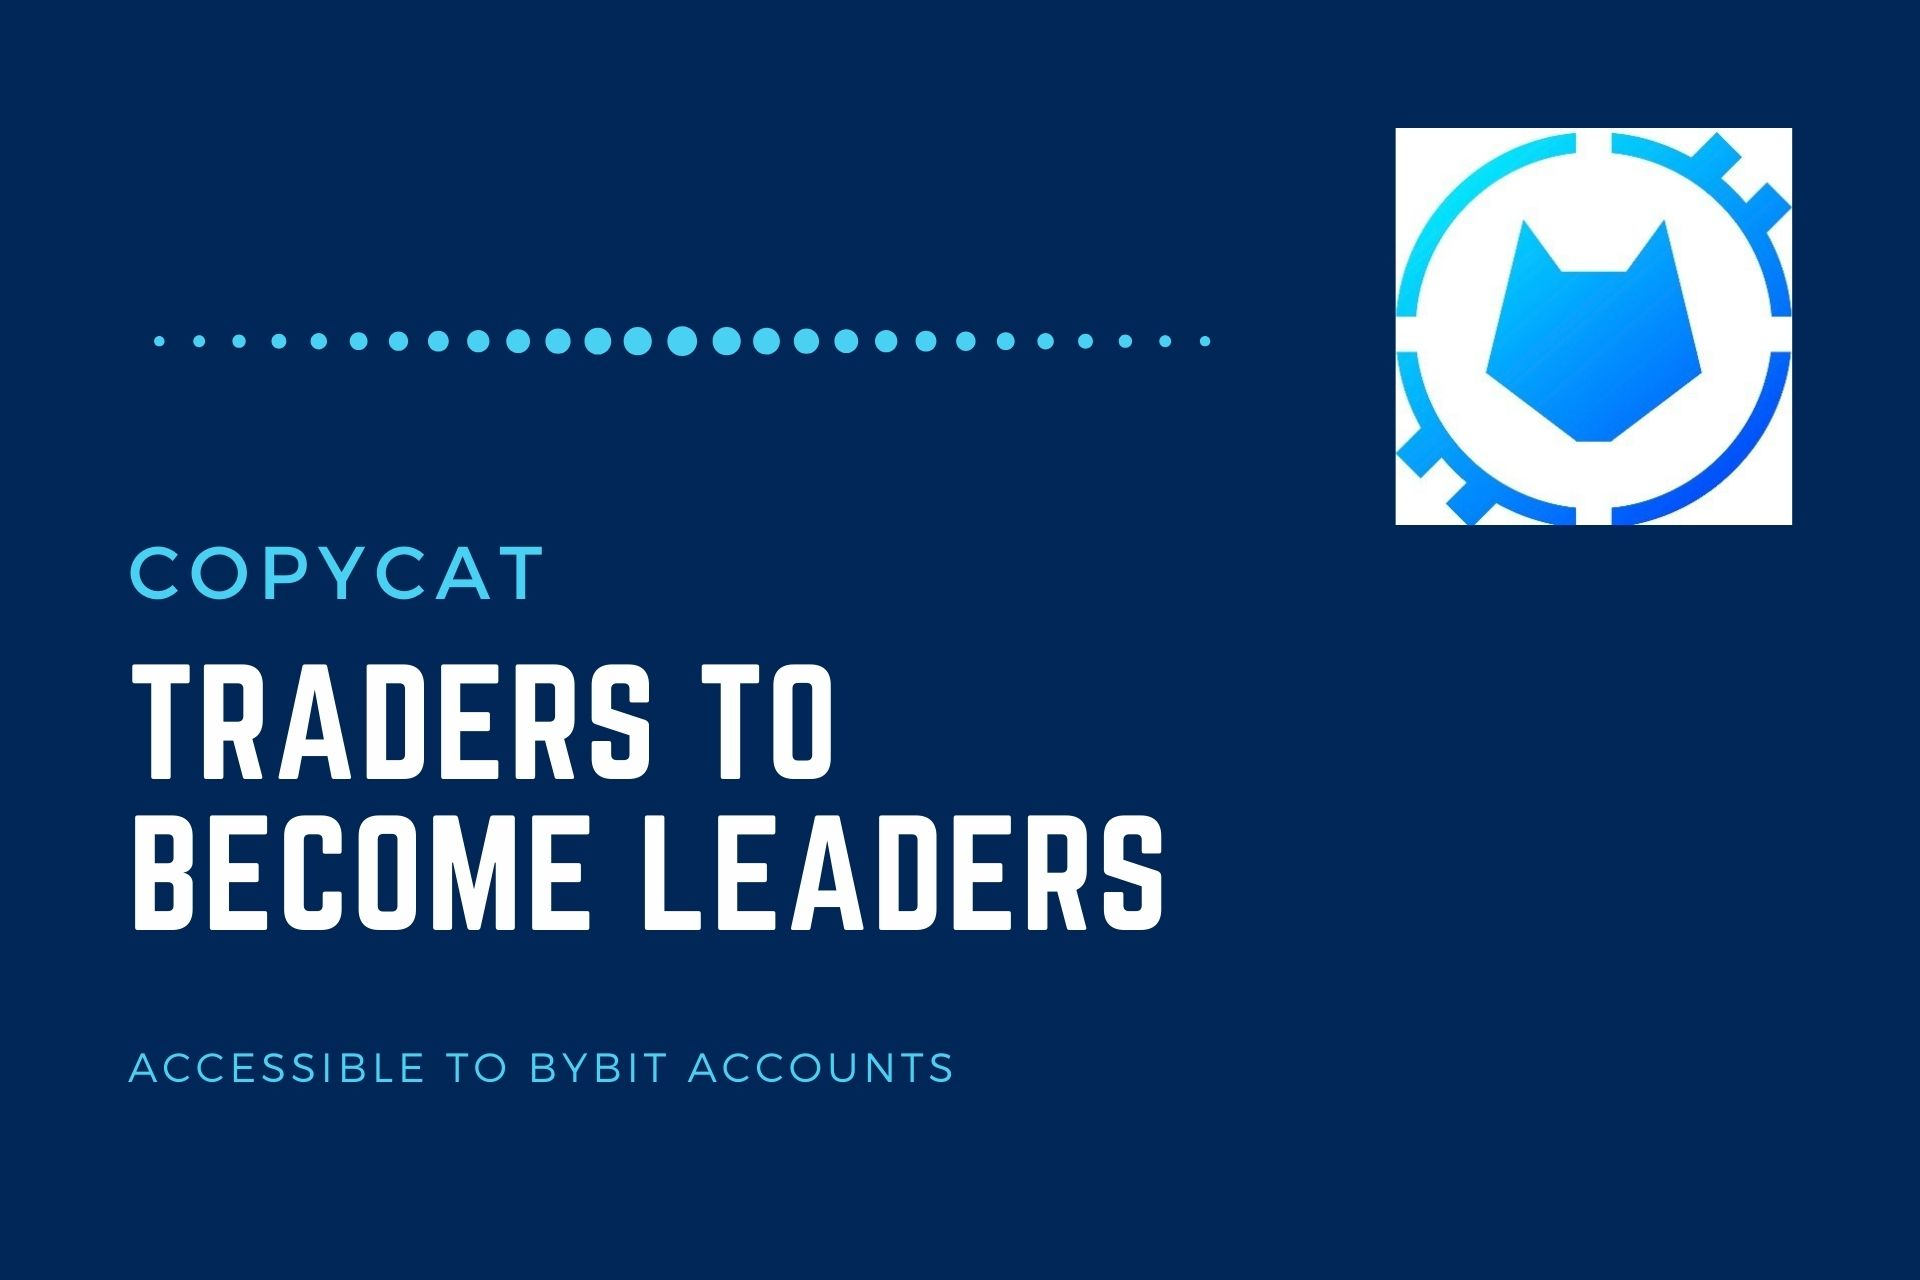 CopyCAT- An Opportunity for All Traders to Become Leaders